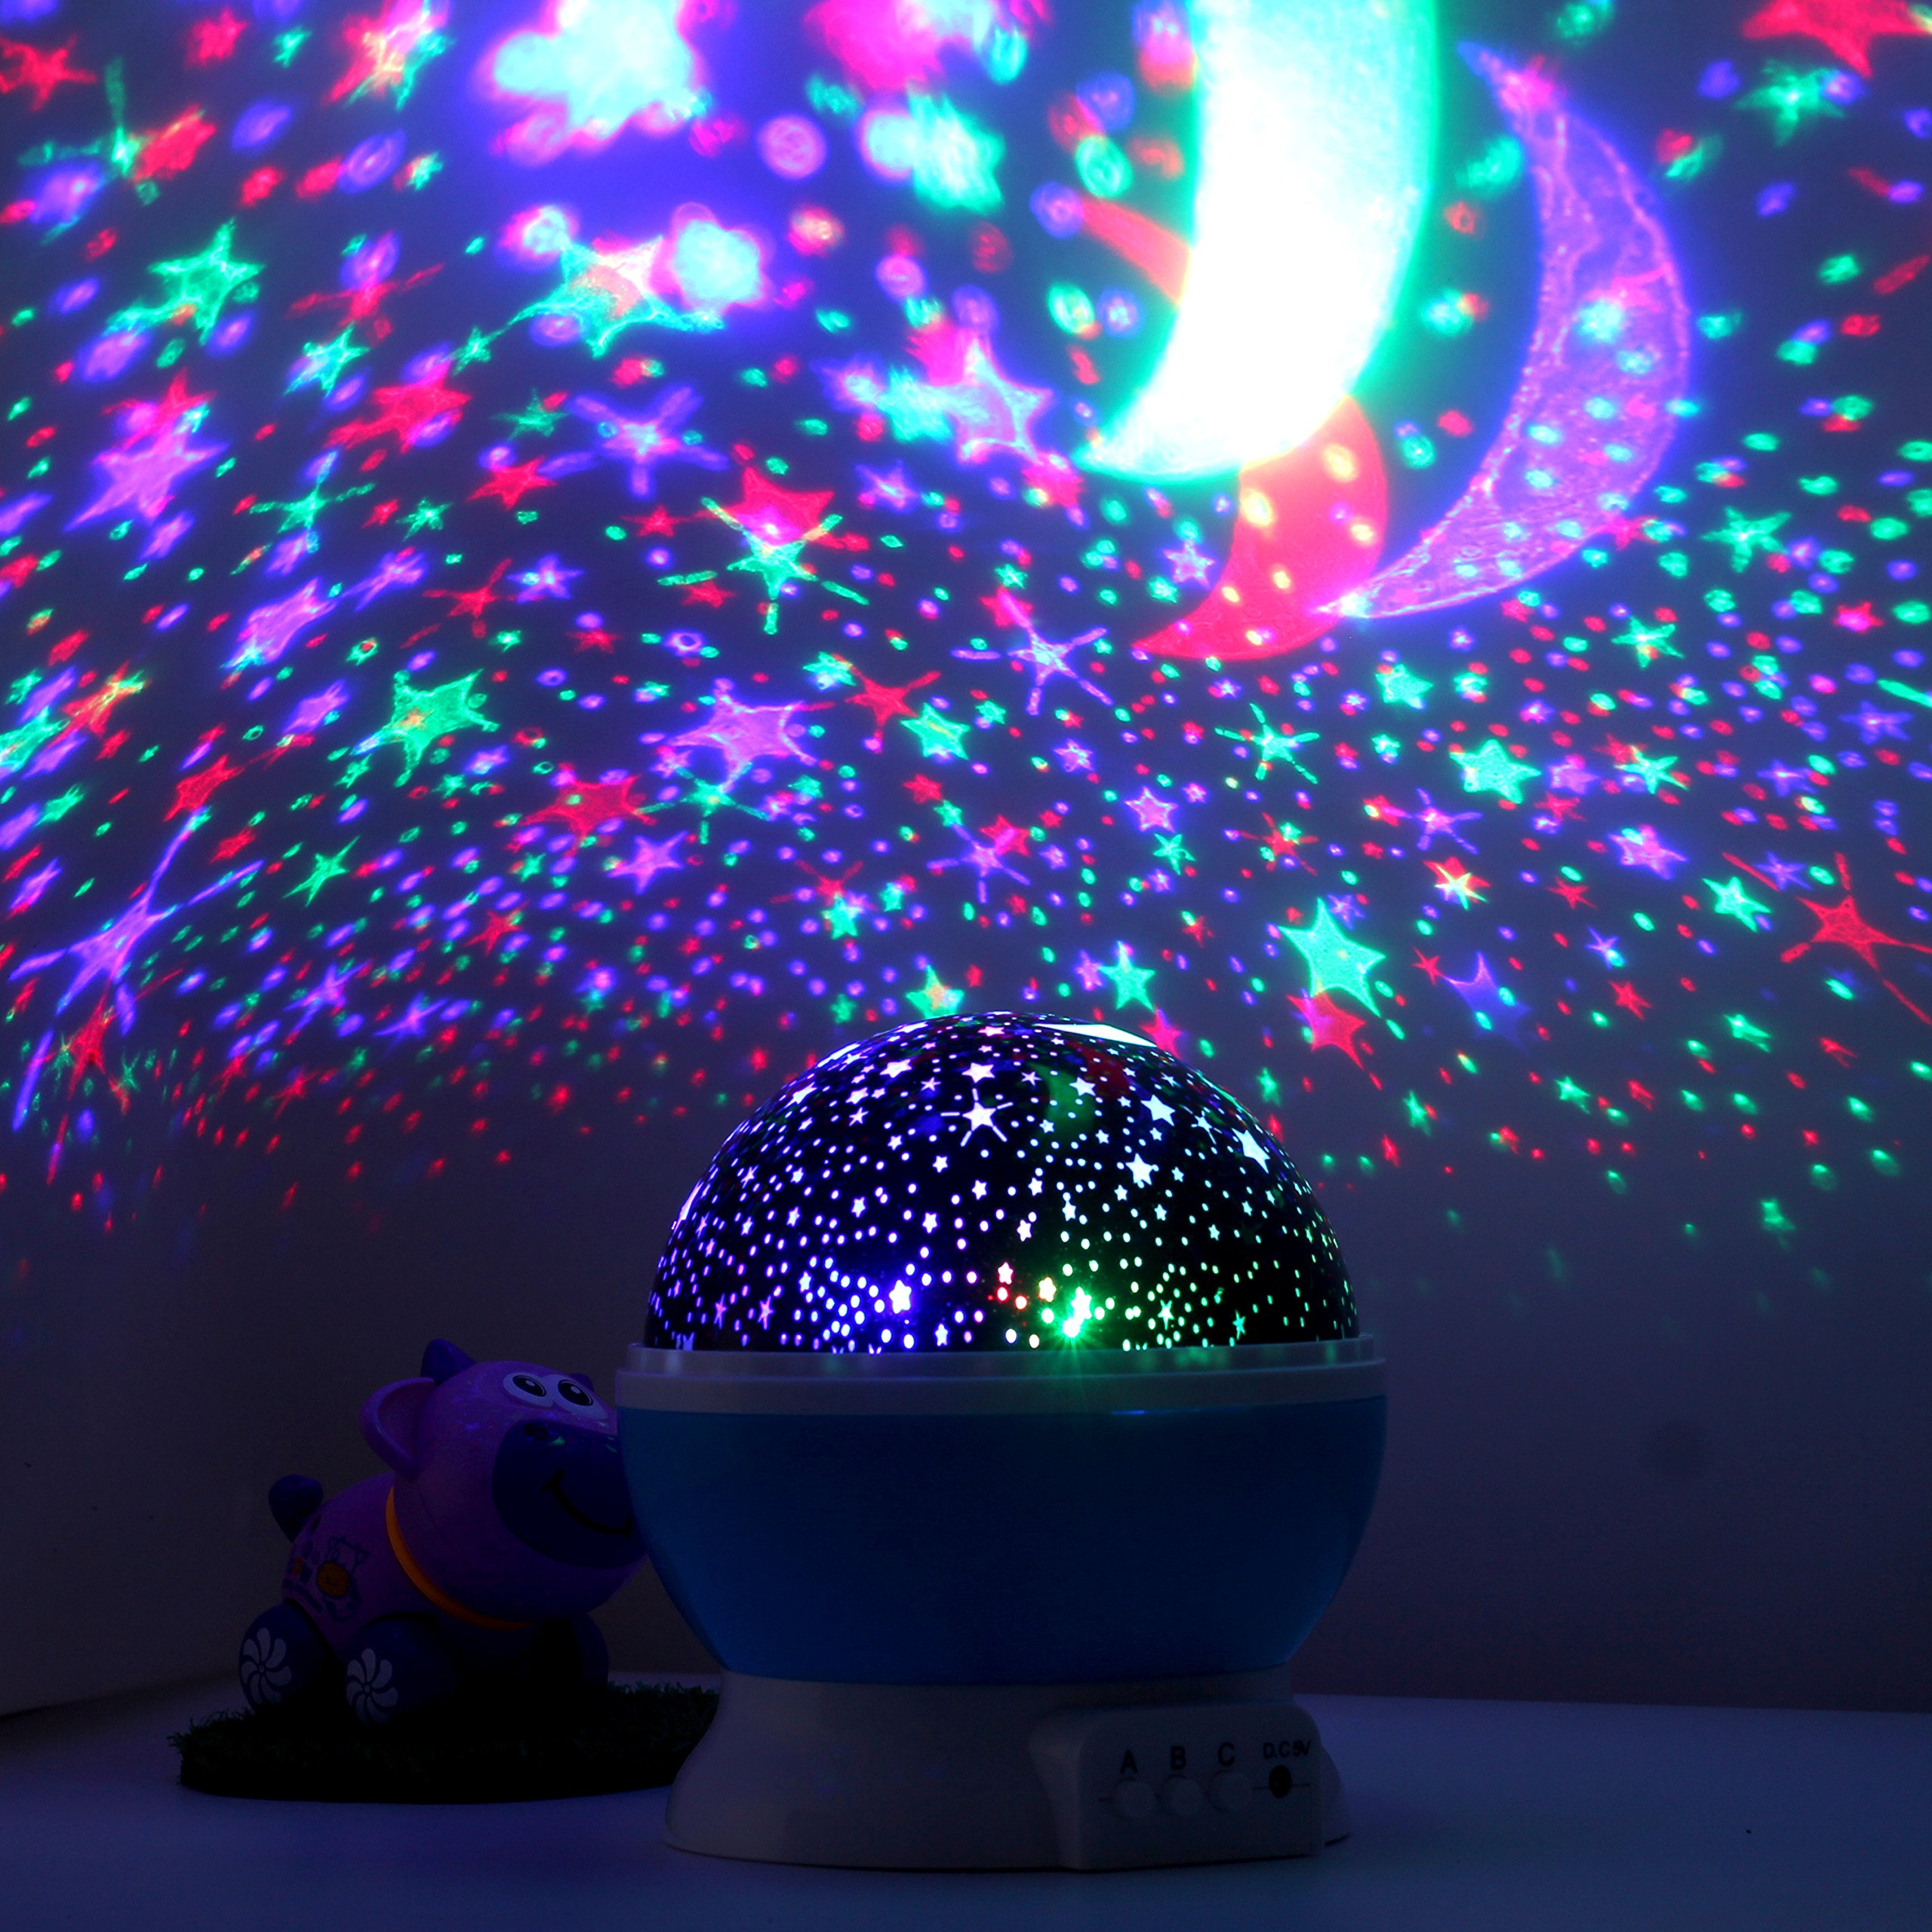 Led smart night lamp - Incredible Cosmos Projector Night Lamp The Cosmos Night Light Projector Is An Incredibly Smart Night Lamp That Projects The Cosmos On The Ceiling Of Your